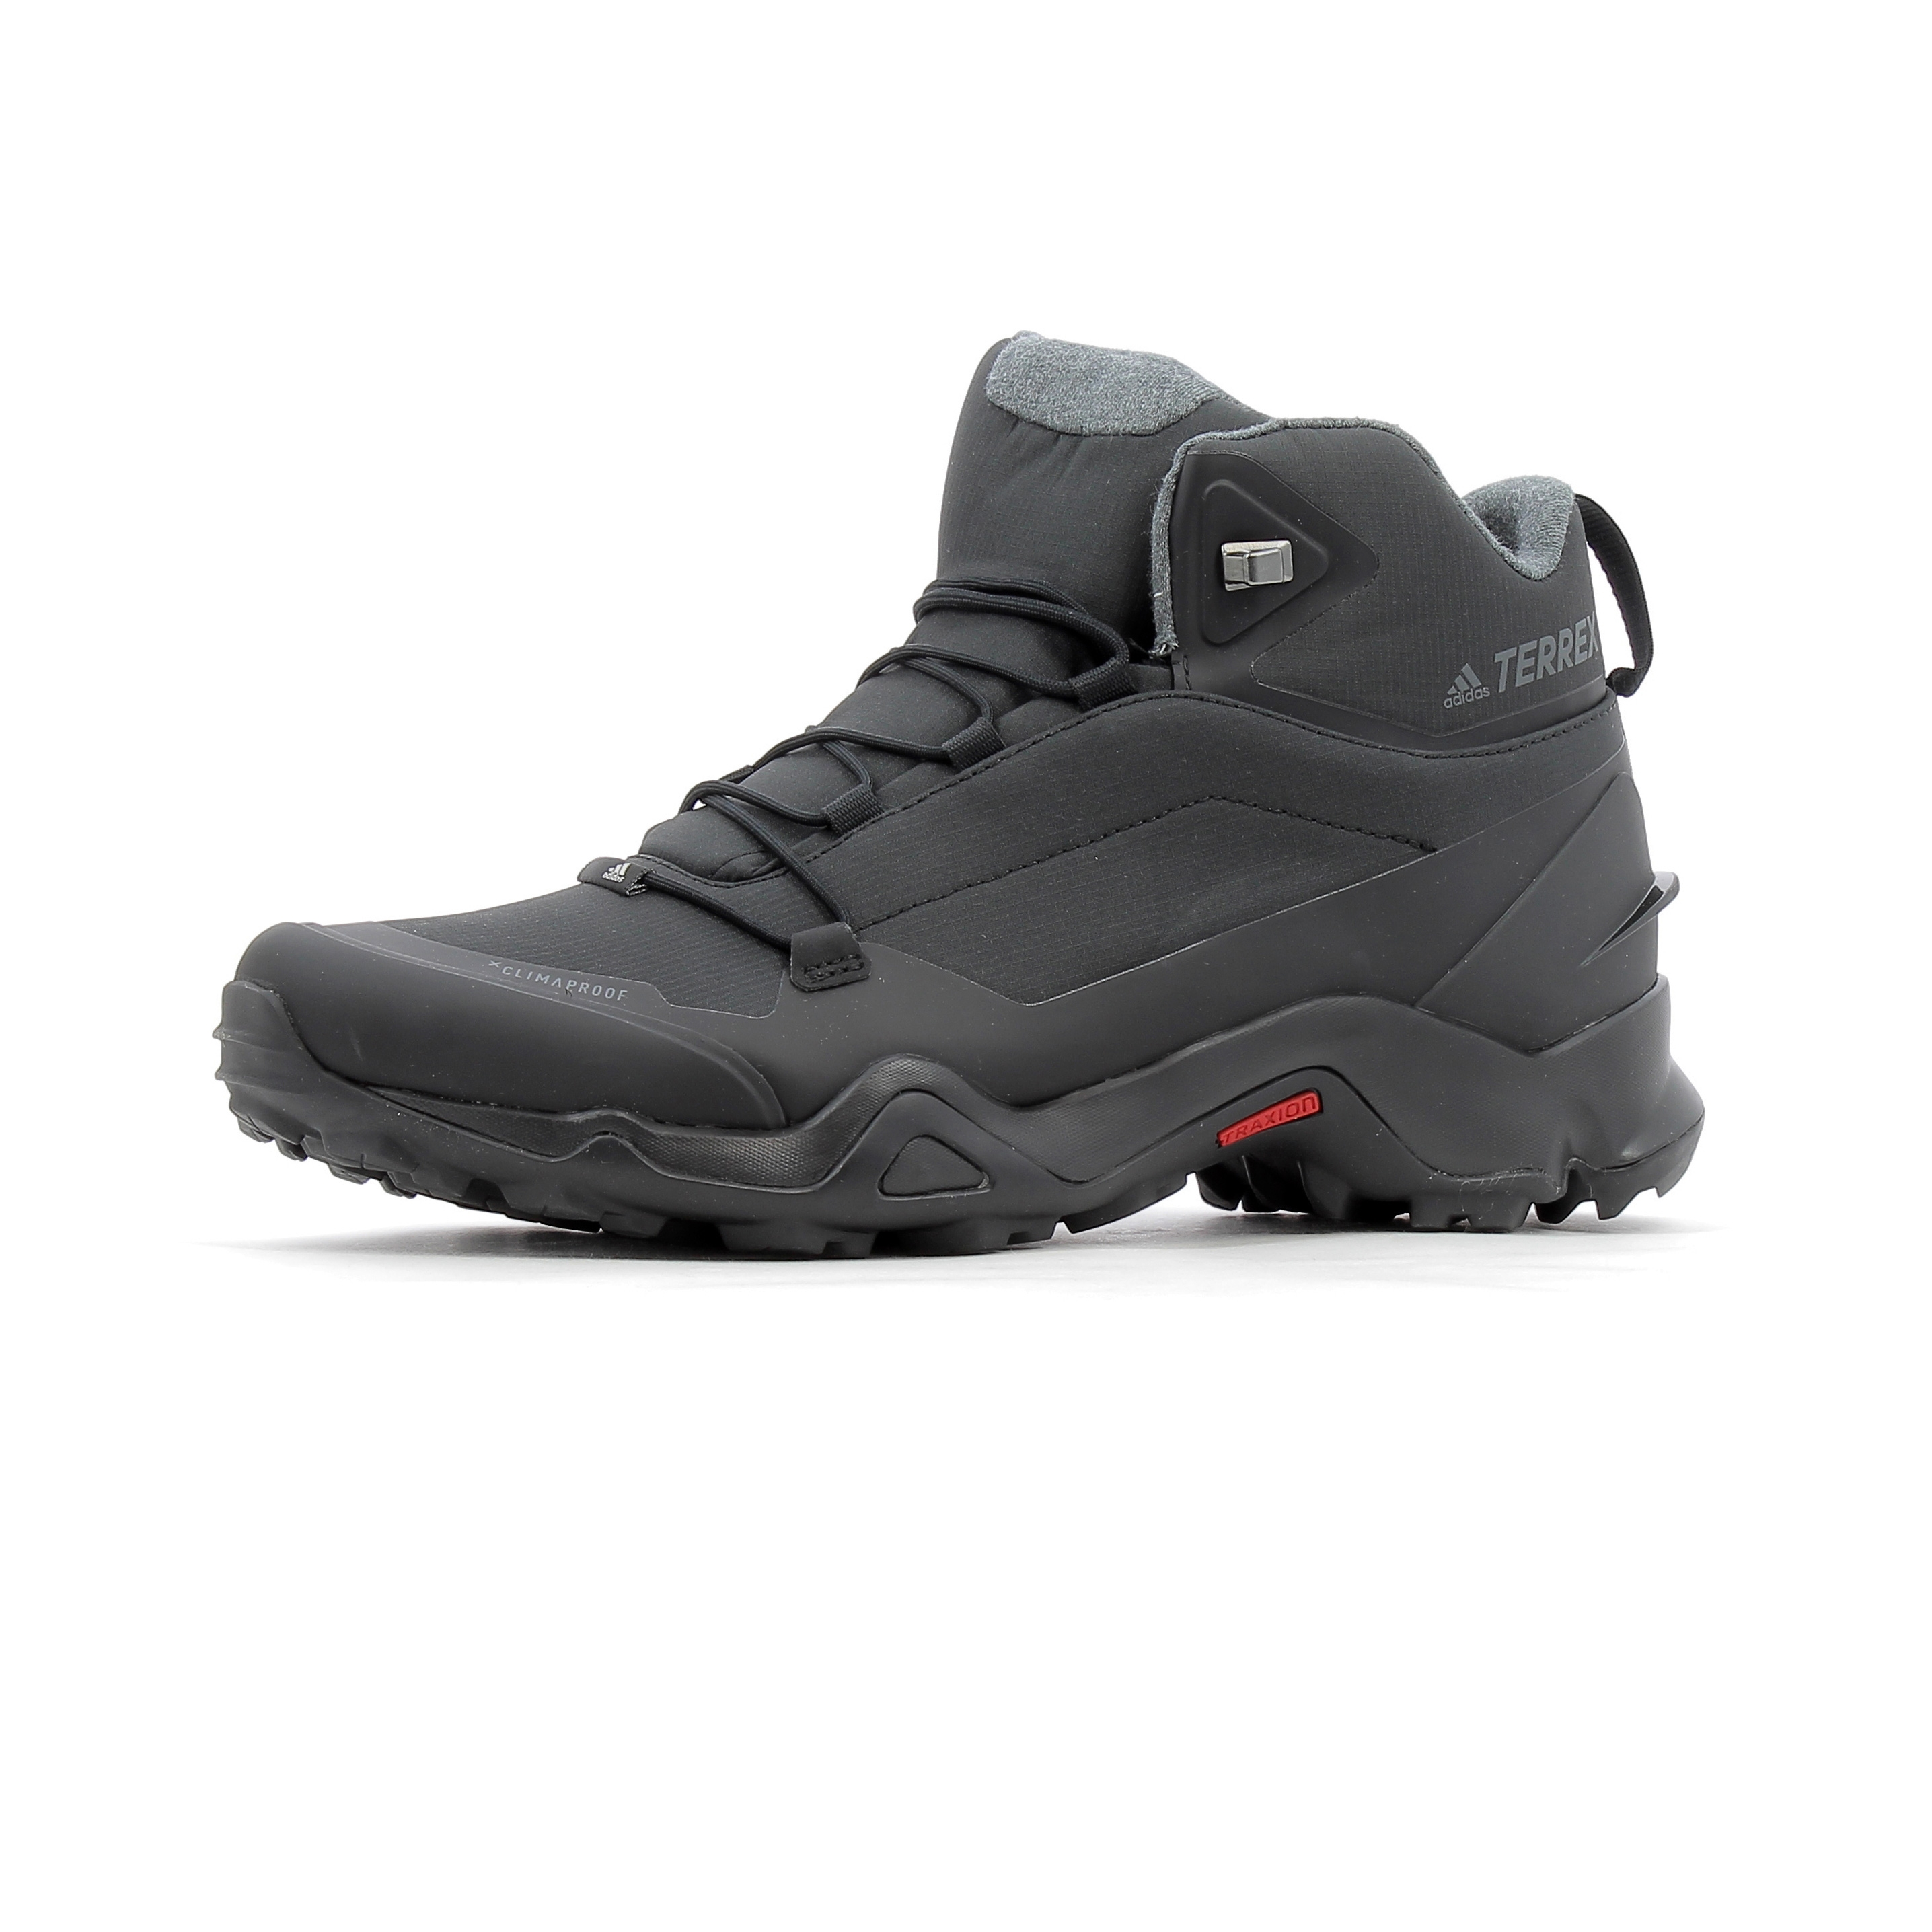 united kingdom casual shoes outlet on sale chaussures de randonnée Adidas Performance Terrex Fastshell Mid